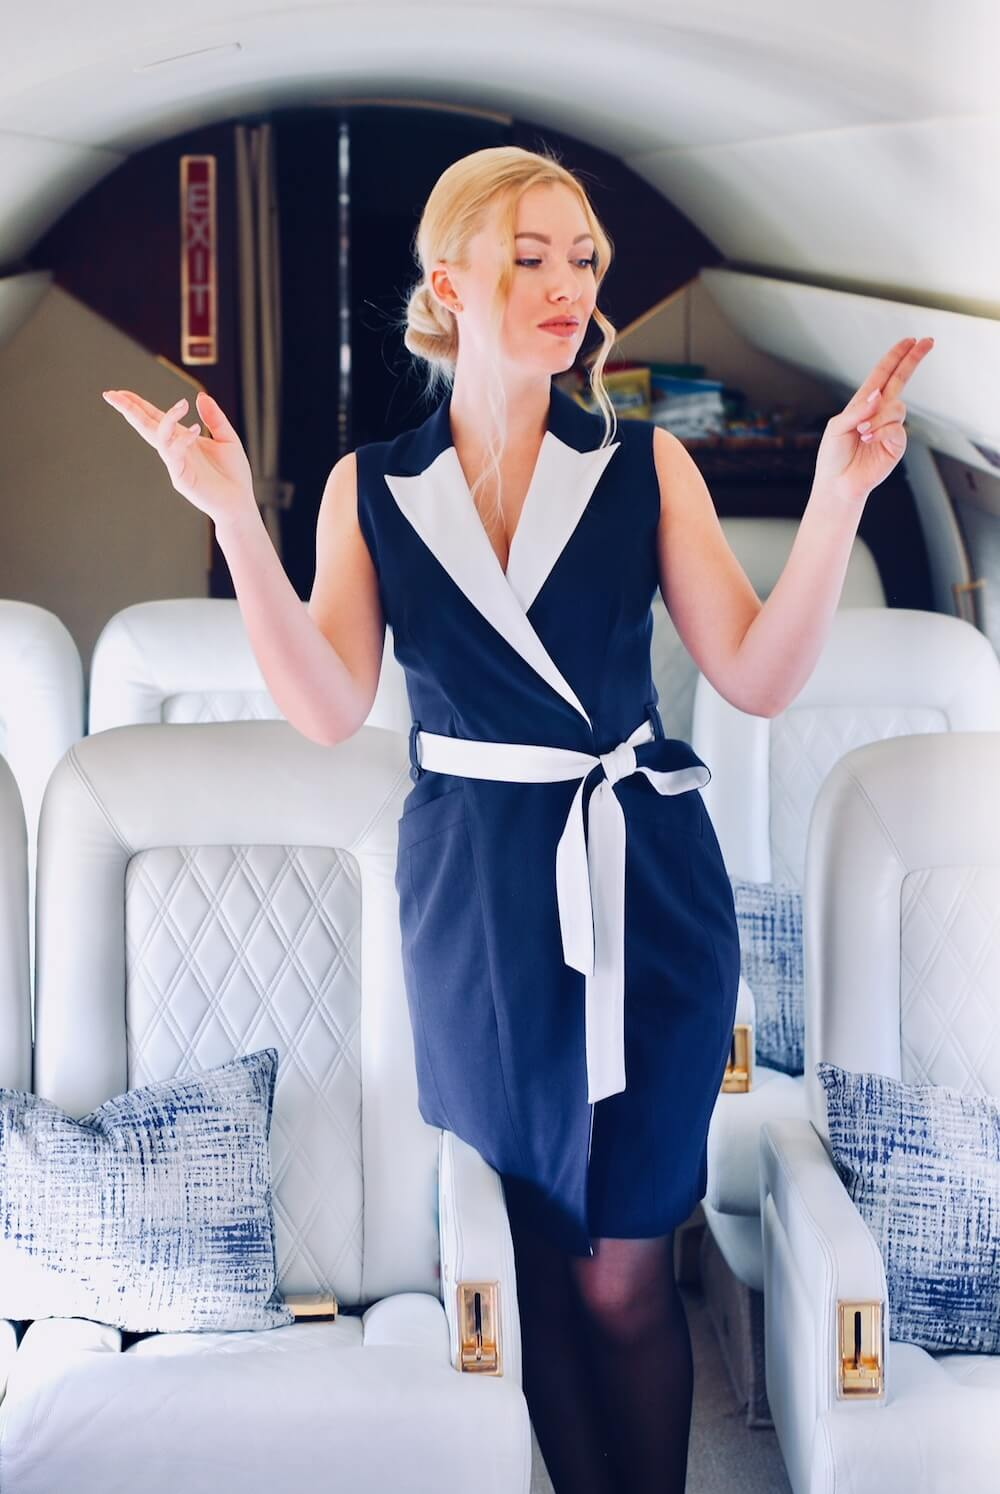 How To See The World As A Corporate Flight Attendant